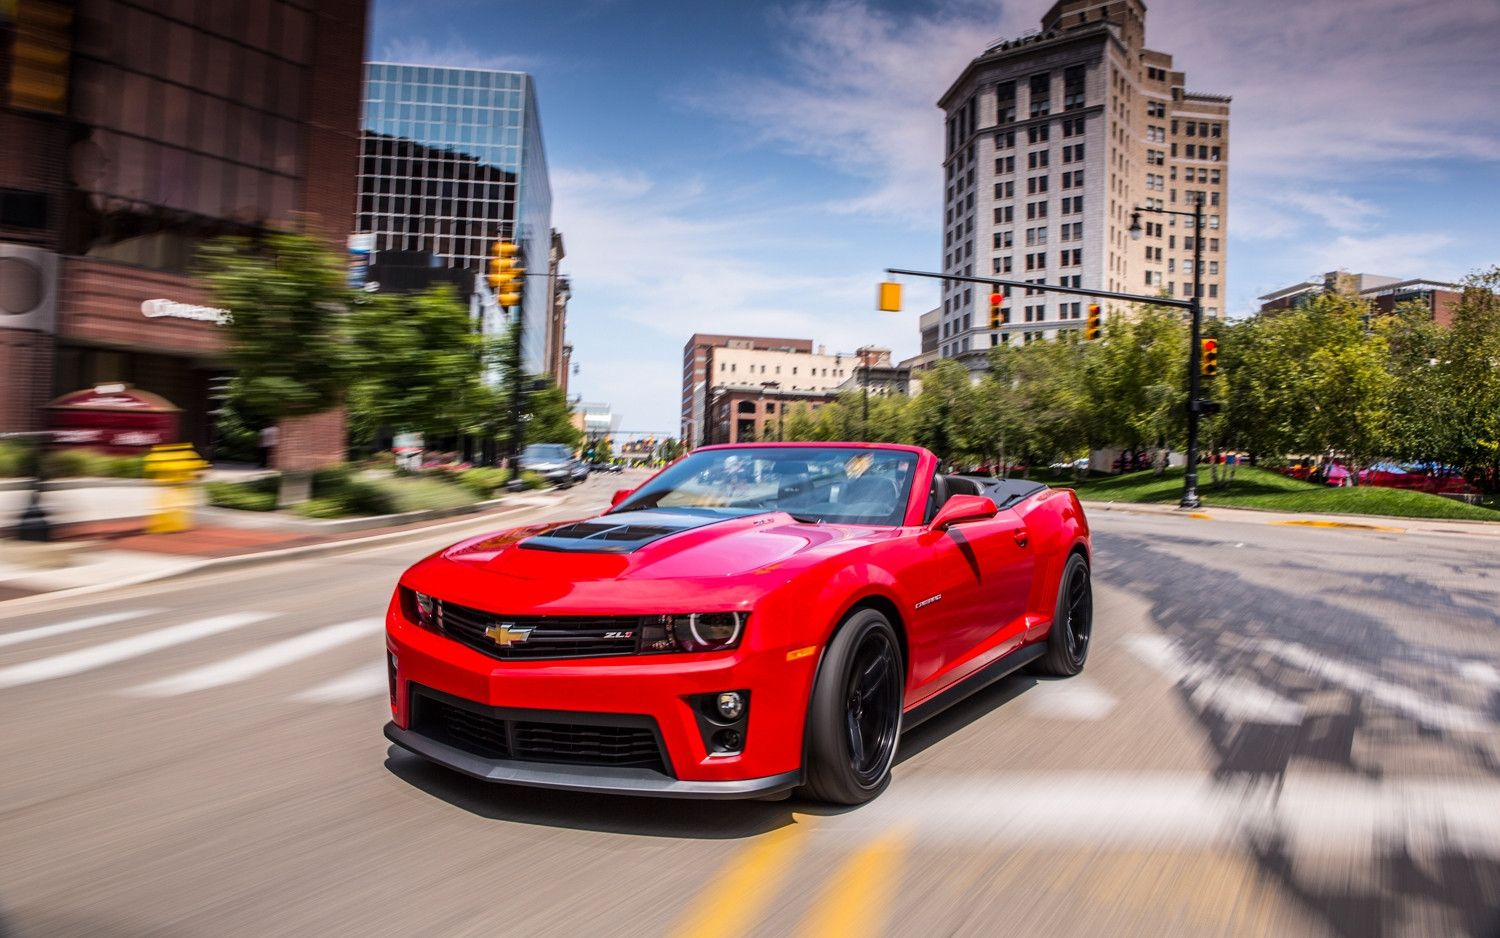 2015 Camaro Zl1 Wallpapers 1500x938